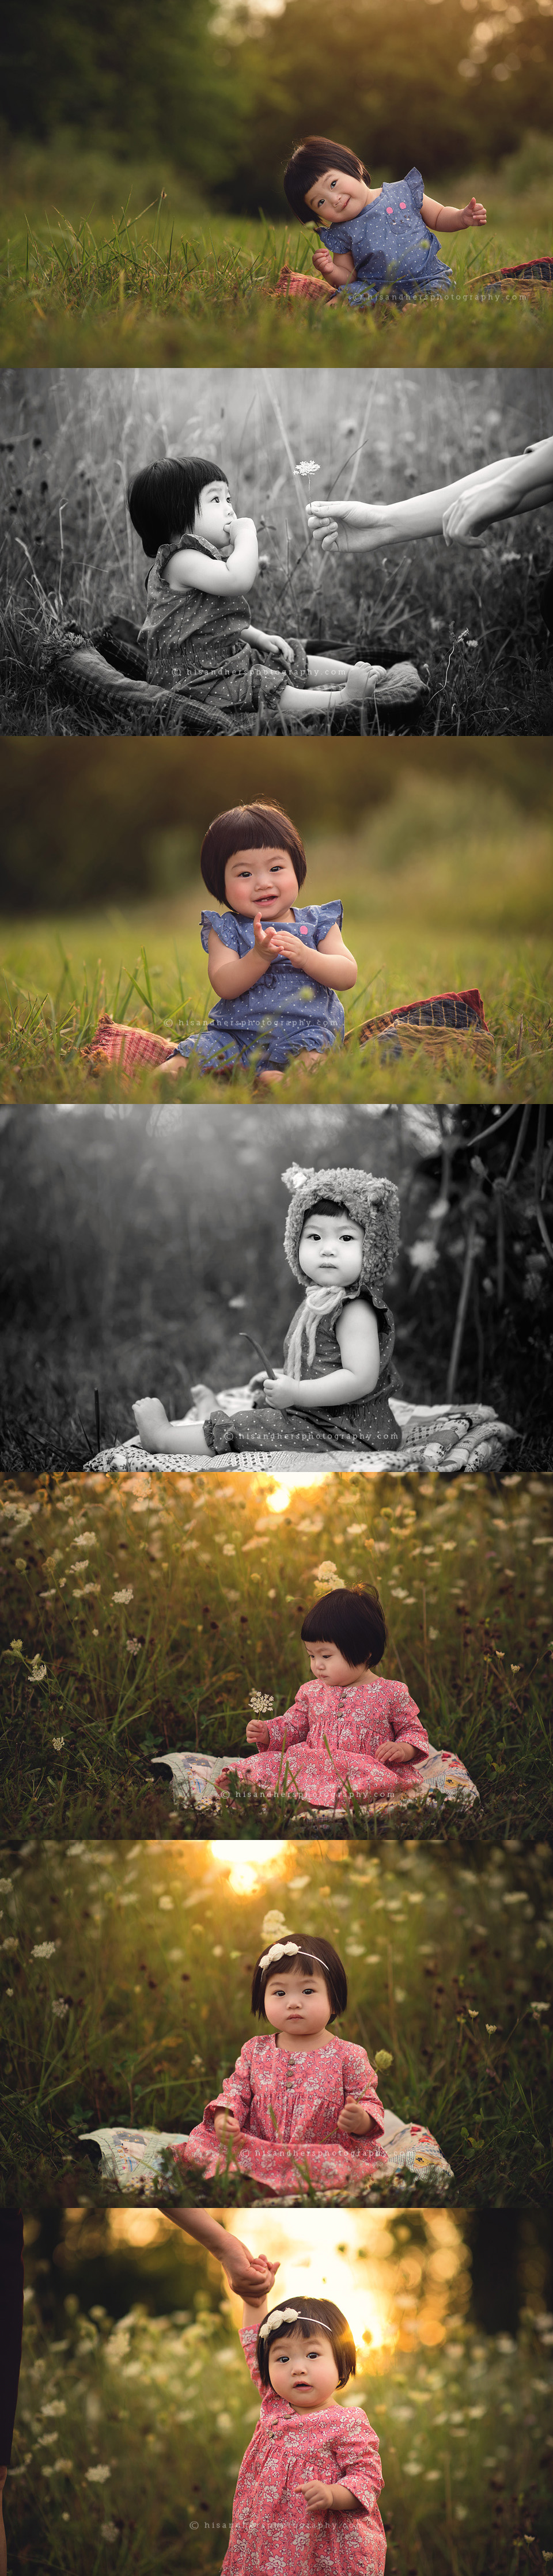 des moines iowa baby photographer 1 year old pictures portraits first birthday photographer iowa